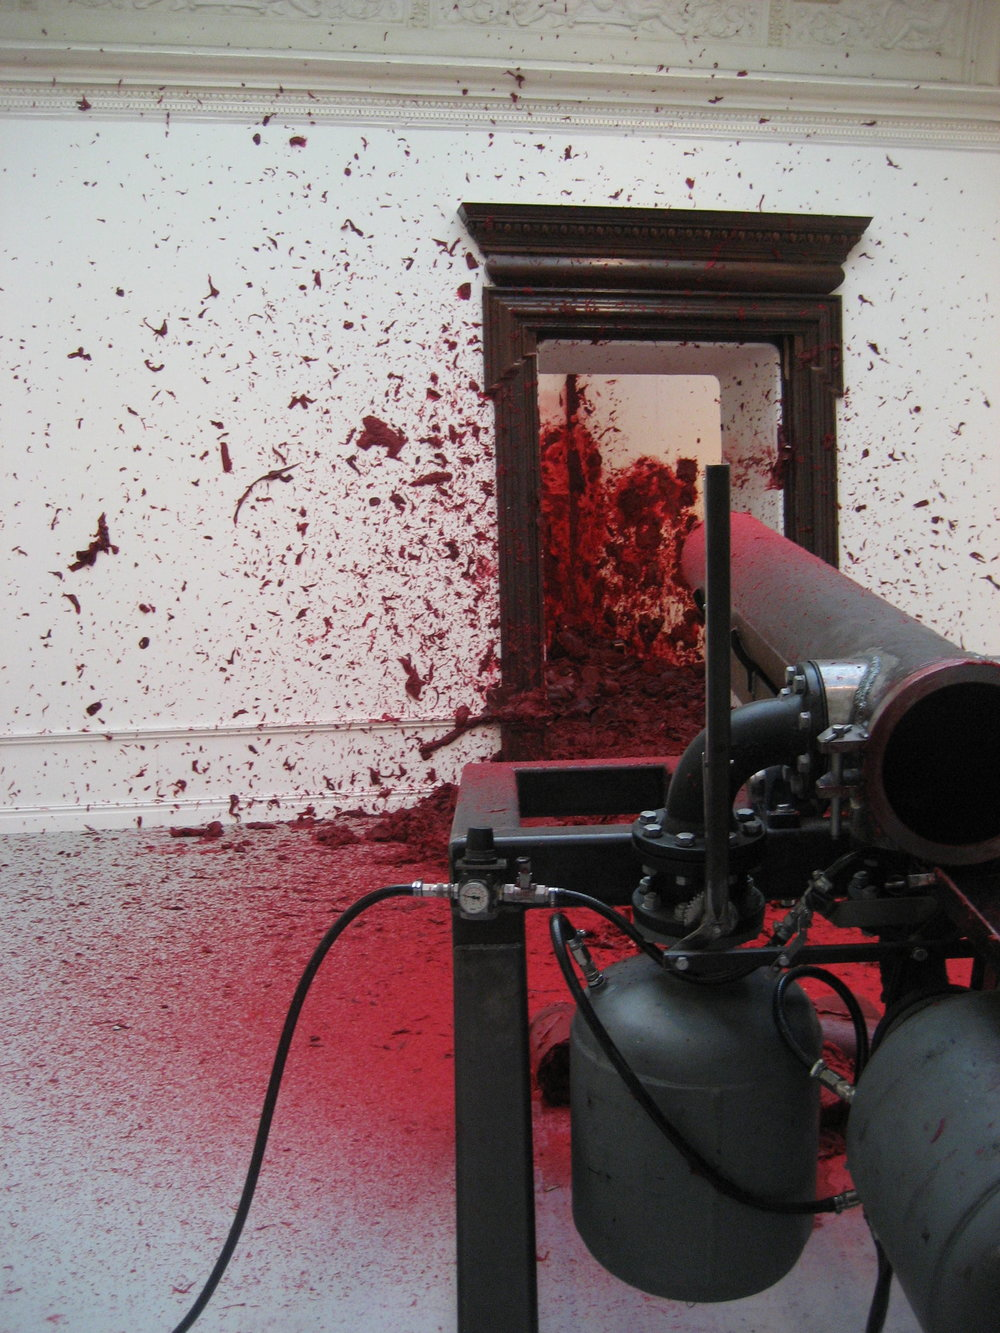 Anish Kapoor,  Shooting into the Corner,  2008/2009.